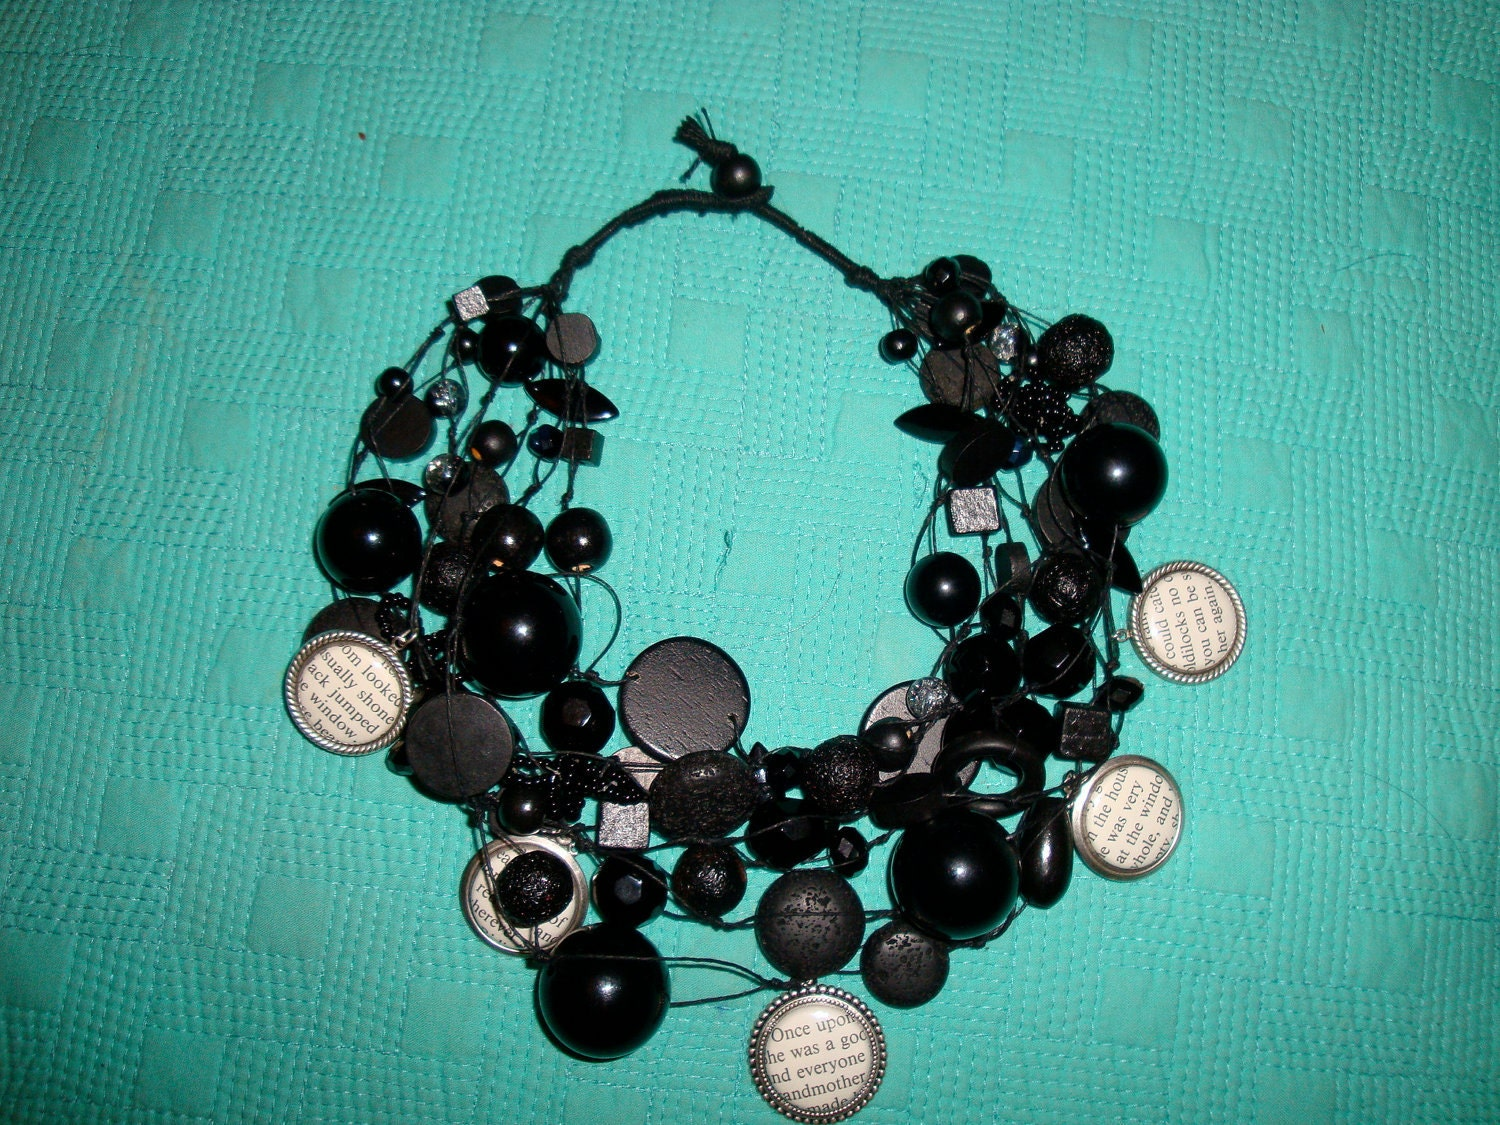 Handmade Bead  statement necklace with charms ( Black, cream, cameos) - creativedesignsstore